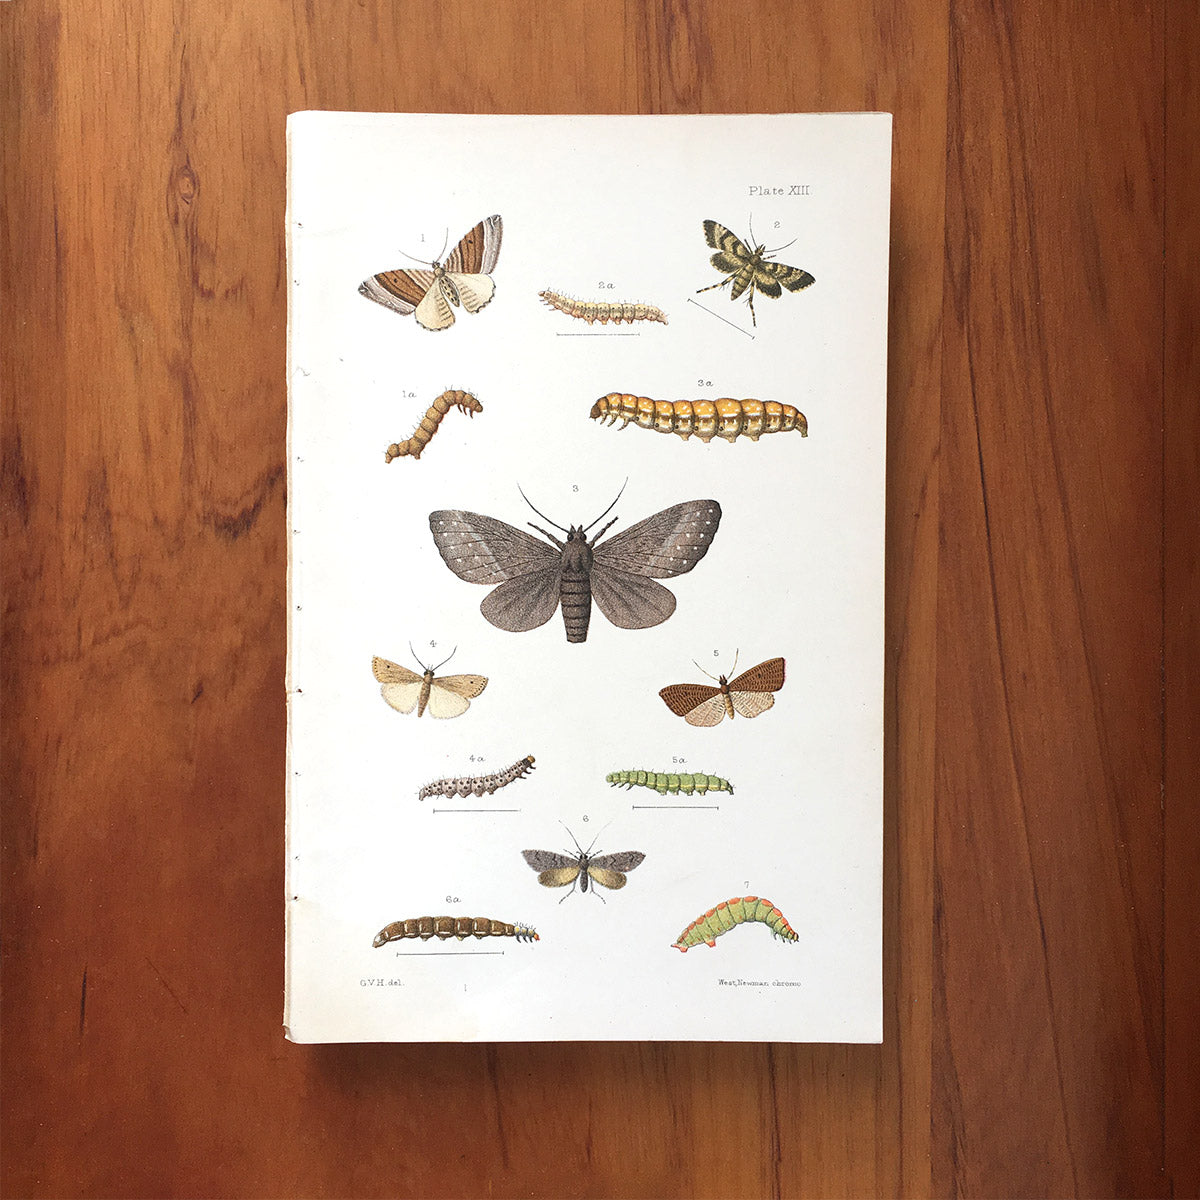 New Zealand insects. Plate XIII. Lepidoptera